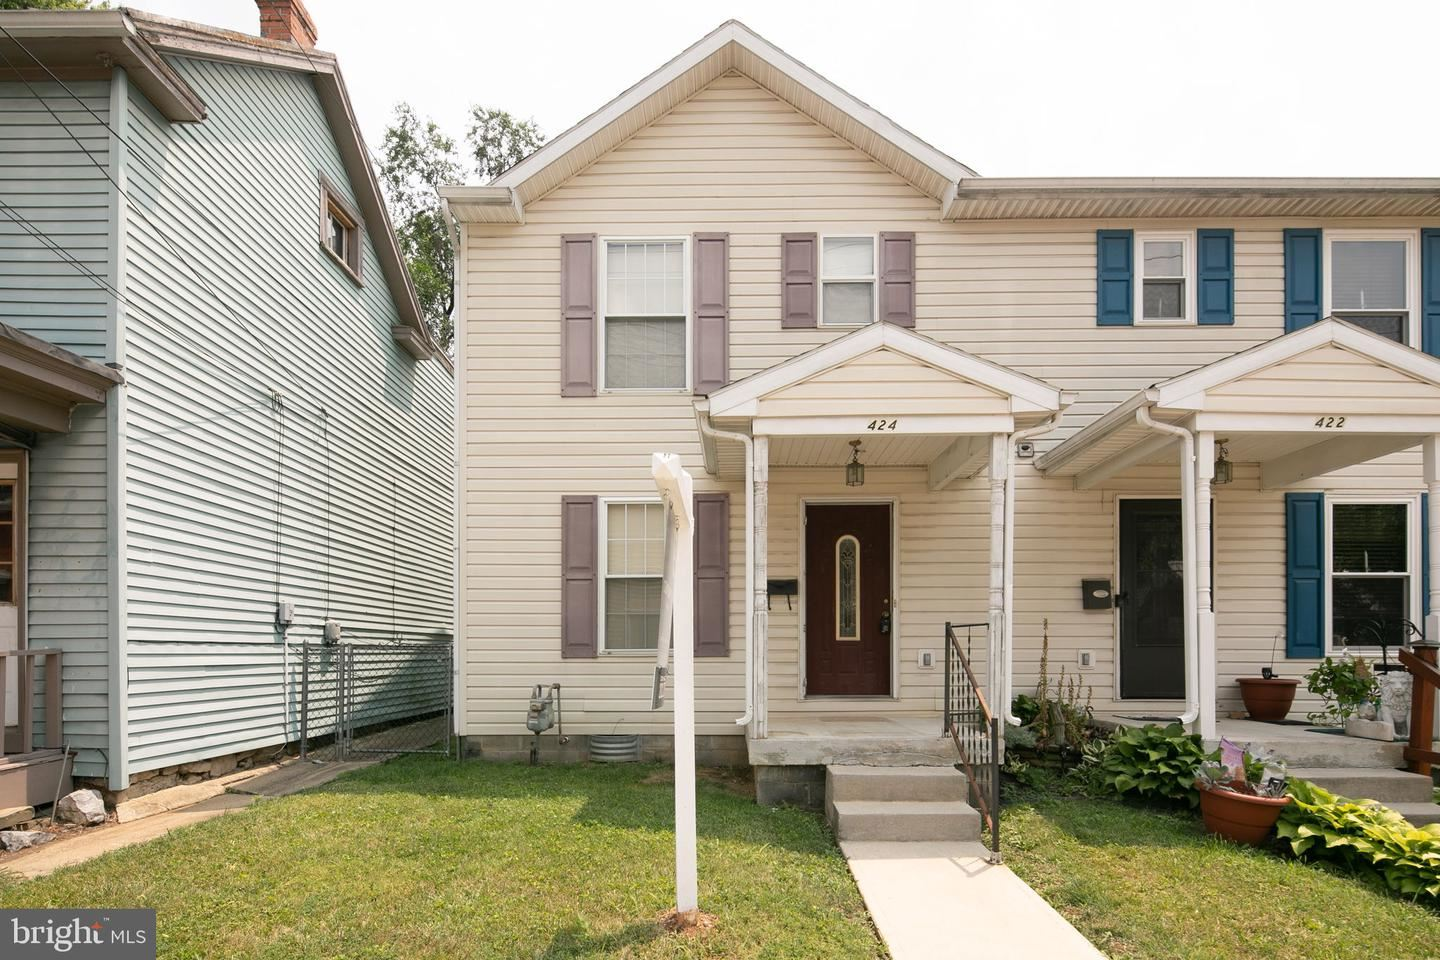 Photo of 424 JONATHAN ST, HAGERSTOWN, MD 21740 (MLS # MDWA2000830)